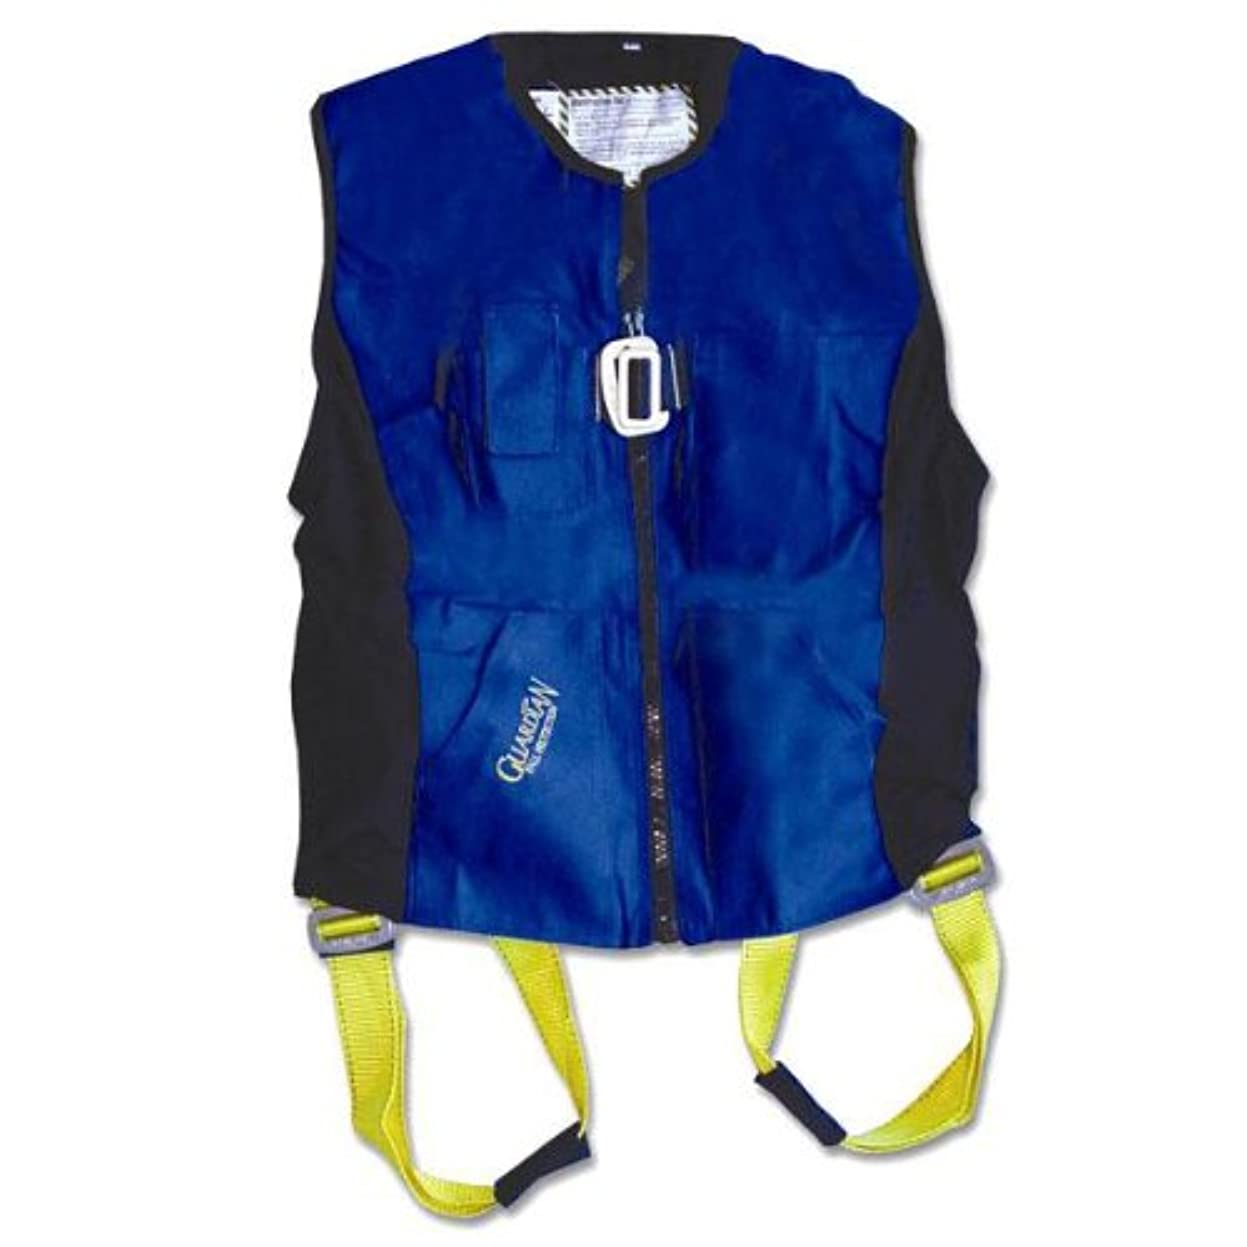 整理する起こりやすい思い出Guardian Fall Protection 12315 Duck Flex Construction Tux Harness, Medium, Blue by Guardian Fall Protection